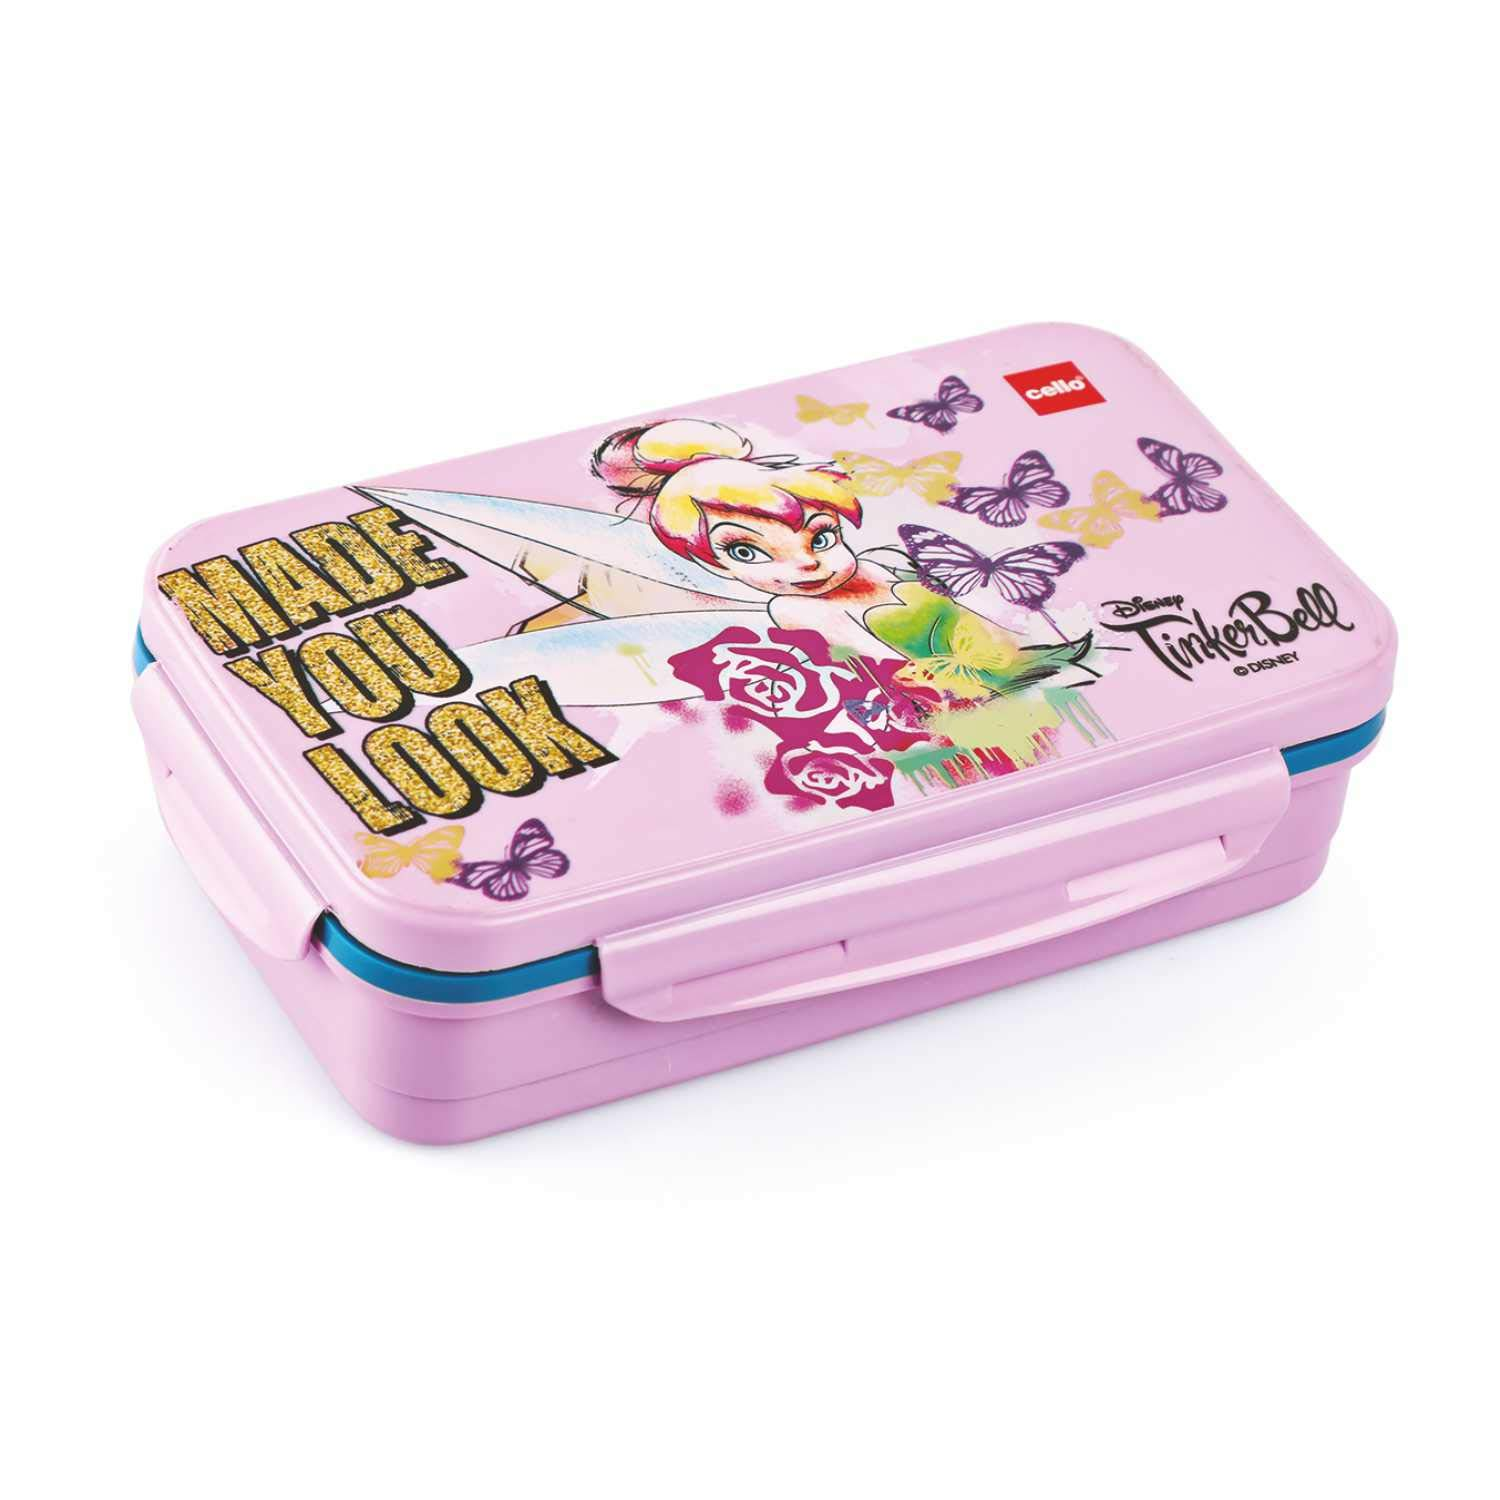 Roll over image to zoom in Cello Super Treat Insulated Lunch Box